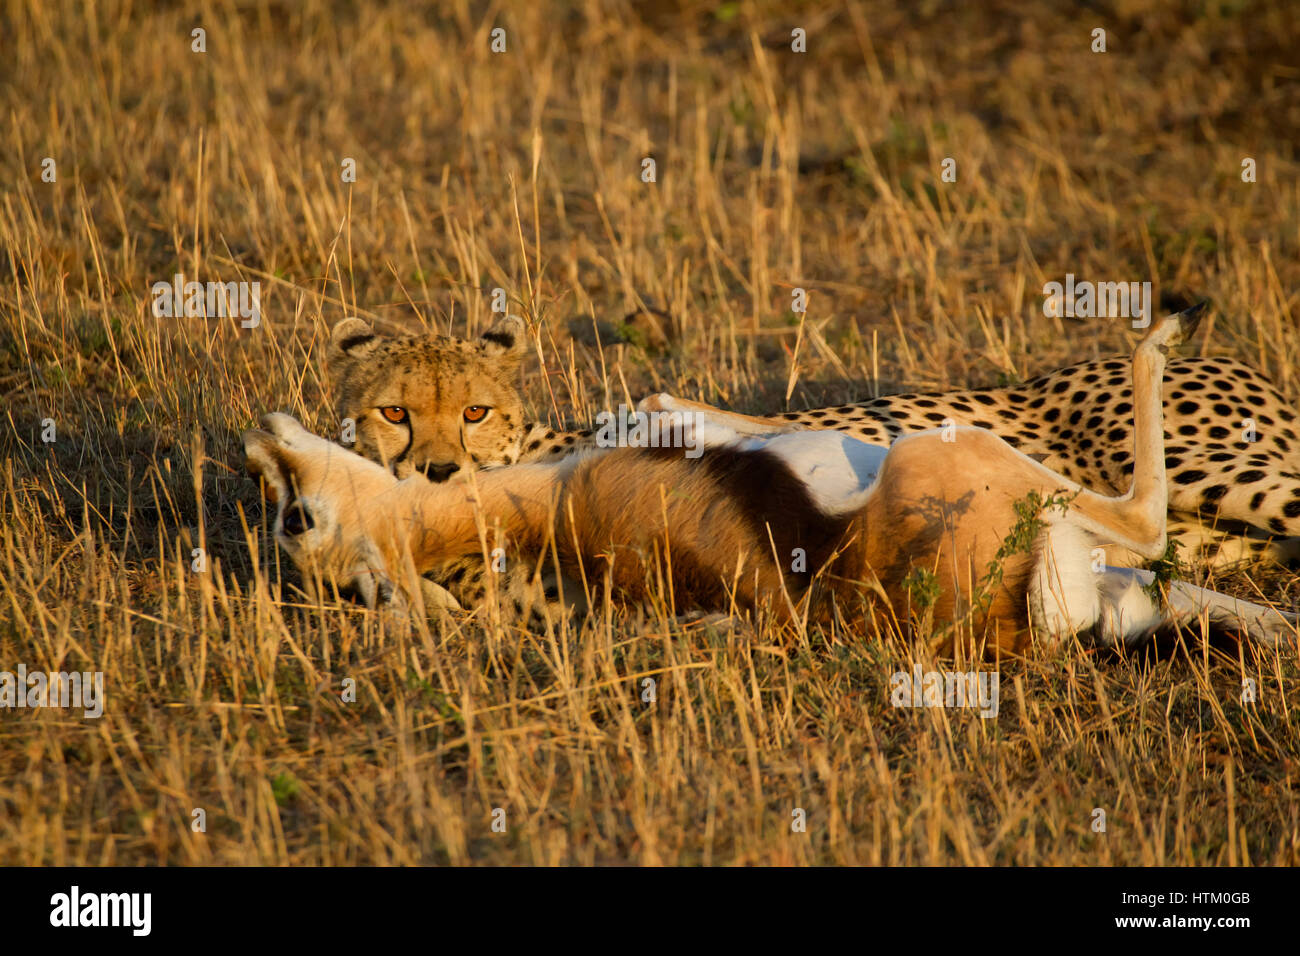 Cheetah (Acinonyx jubatus) with its kill, Masai Mara National Reserve, Kenya, East Africa - Stock Image